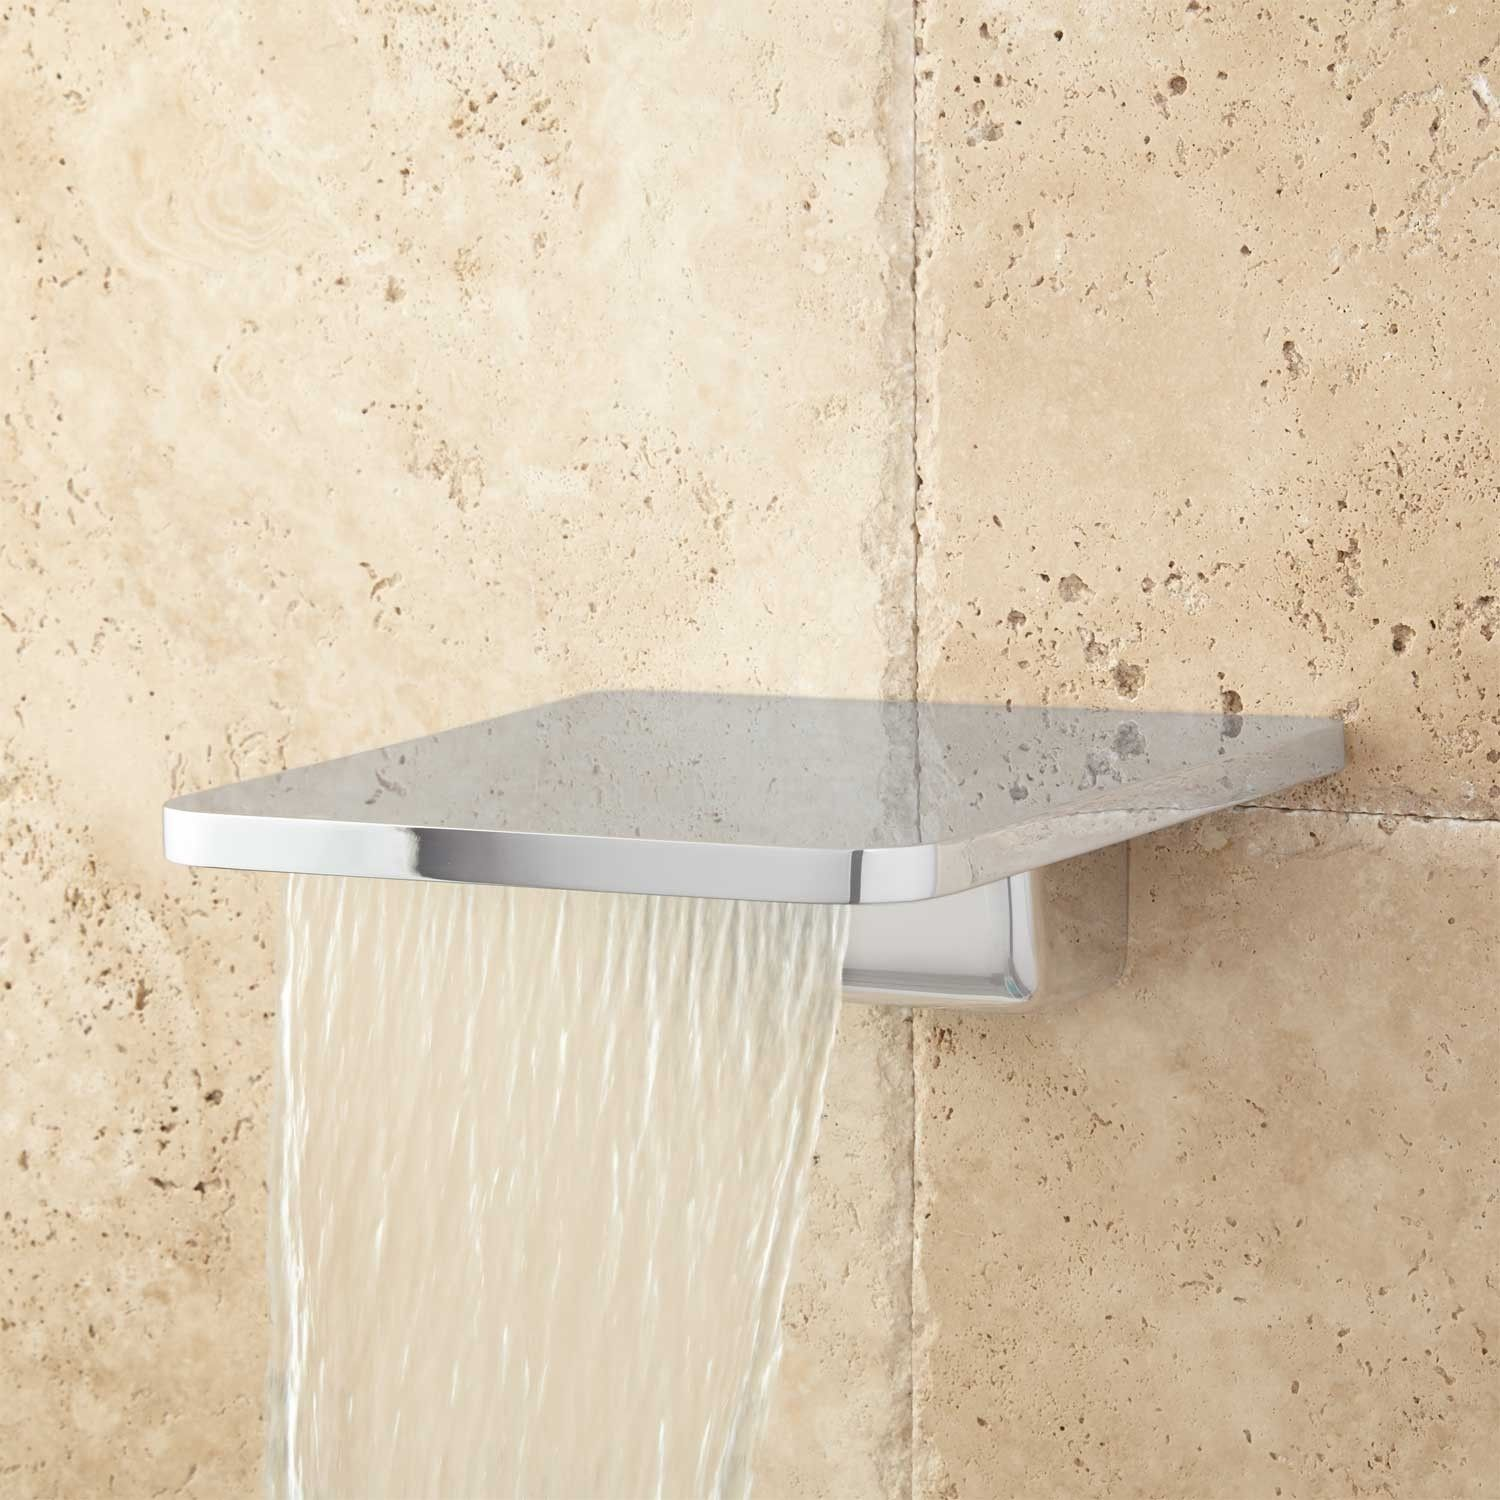 Wall Mount Waterfall Tub Spout With Diverter | http://bottomunion ...